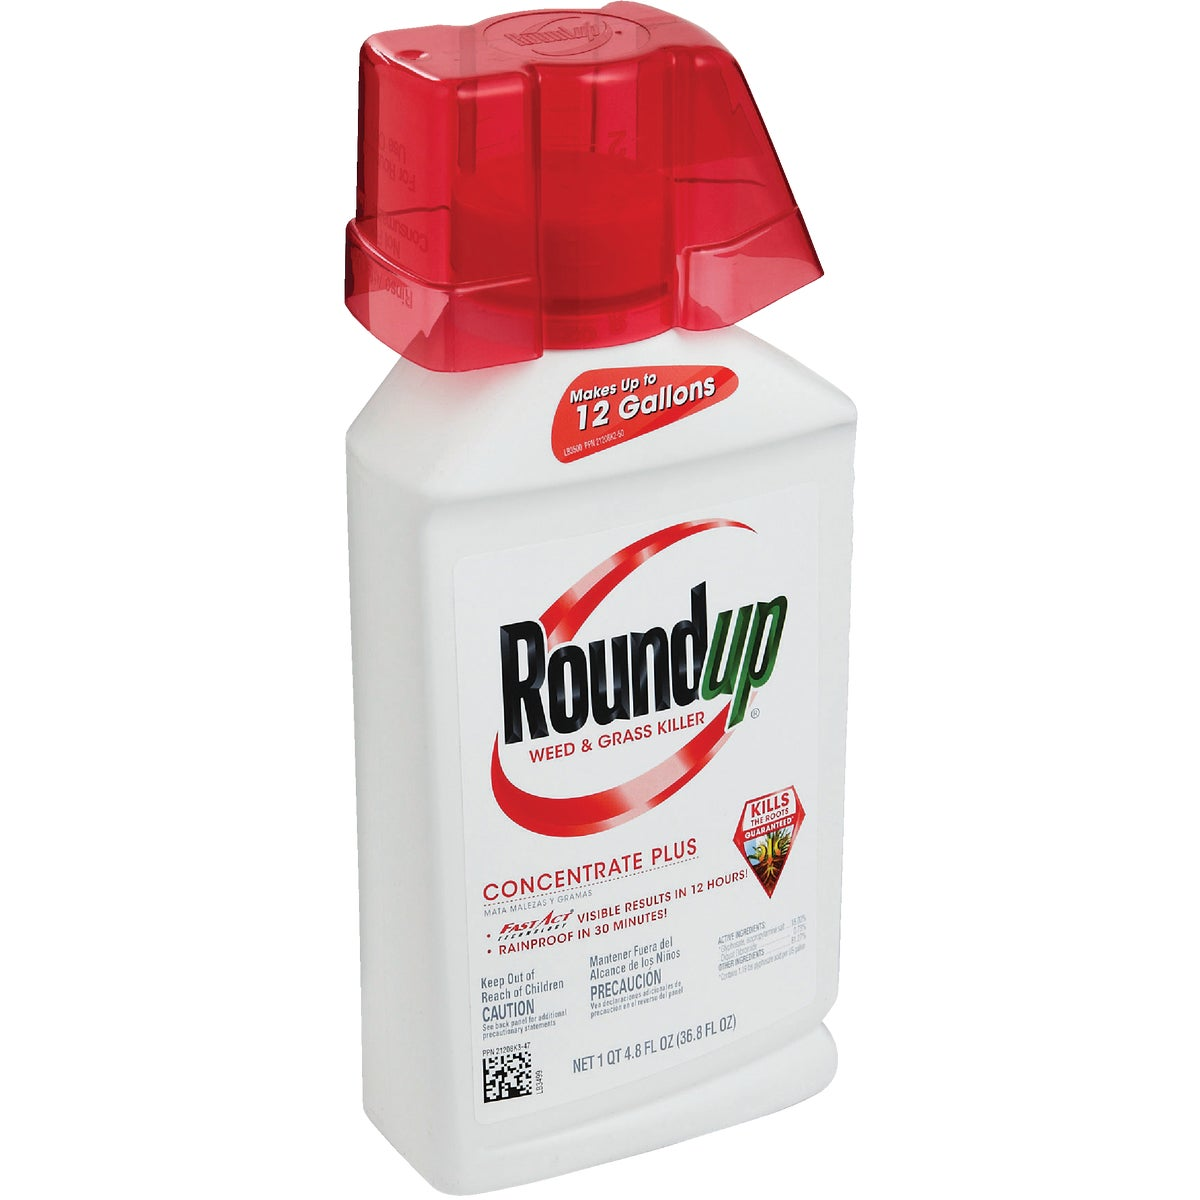 36.8 OZ CONC+ ROUNDUP - 5100610 by Scotts Company